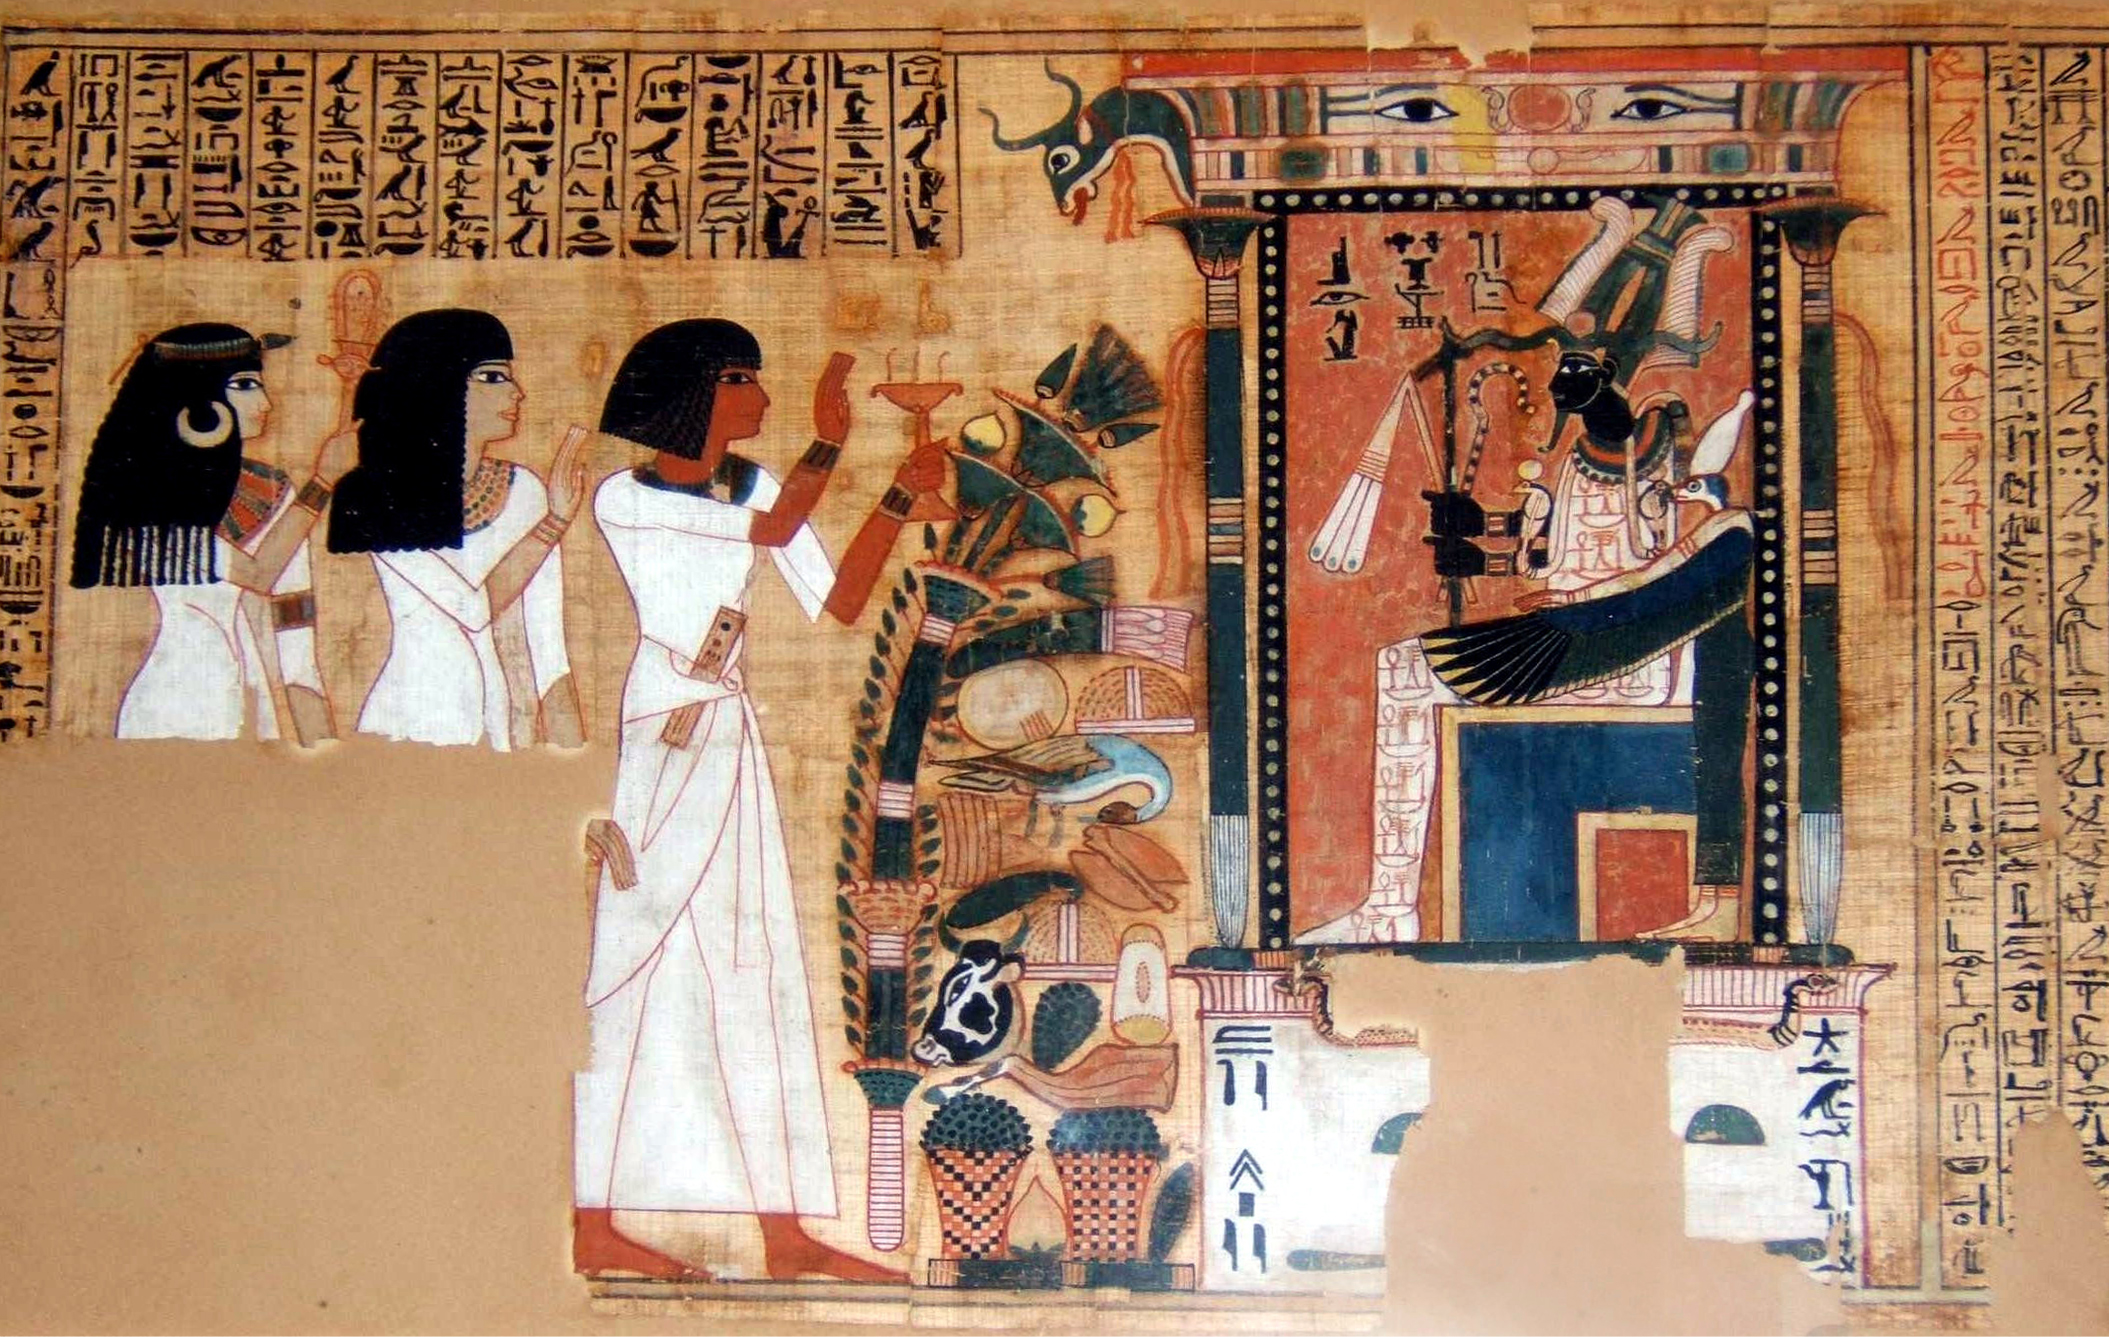 File:Egypt bookofthedead jpg - Wikimedia Commons